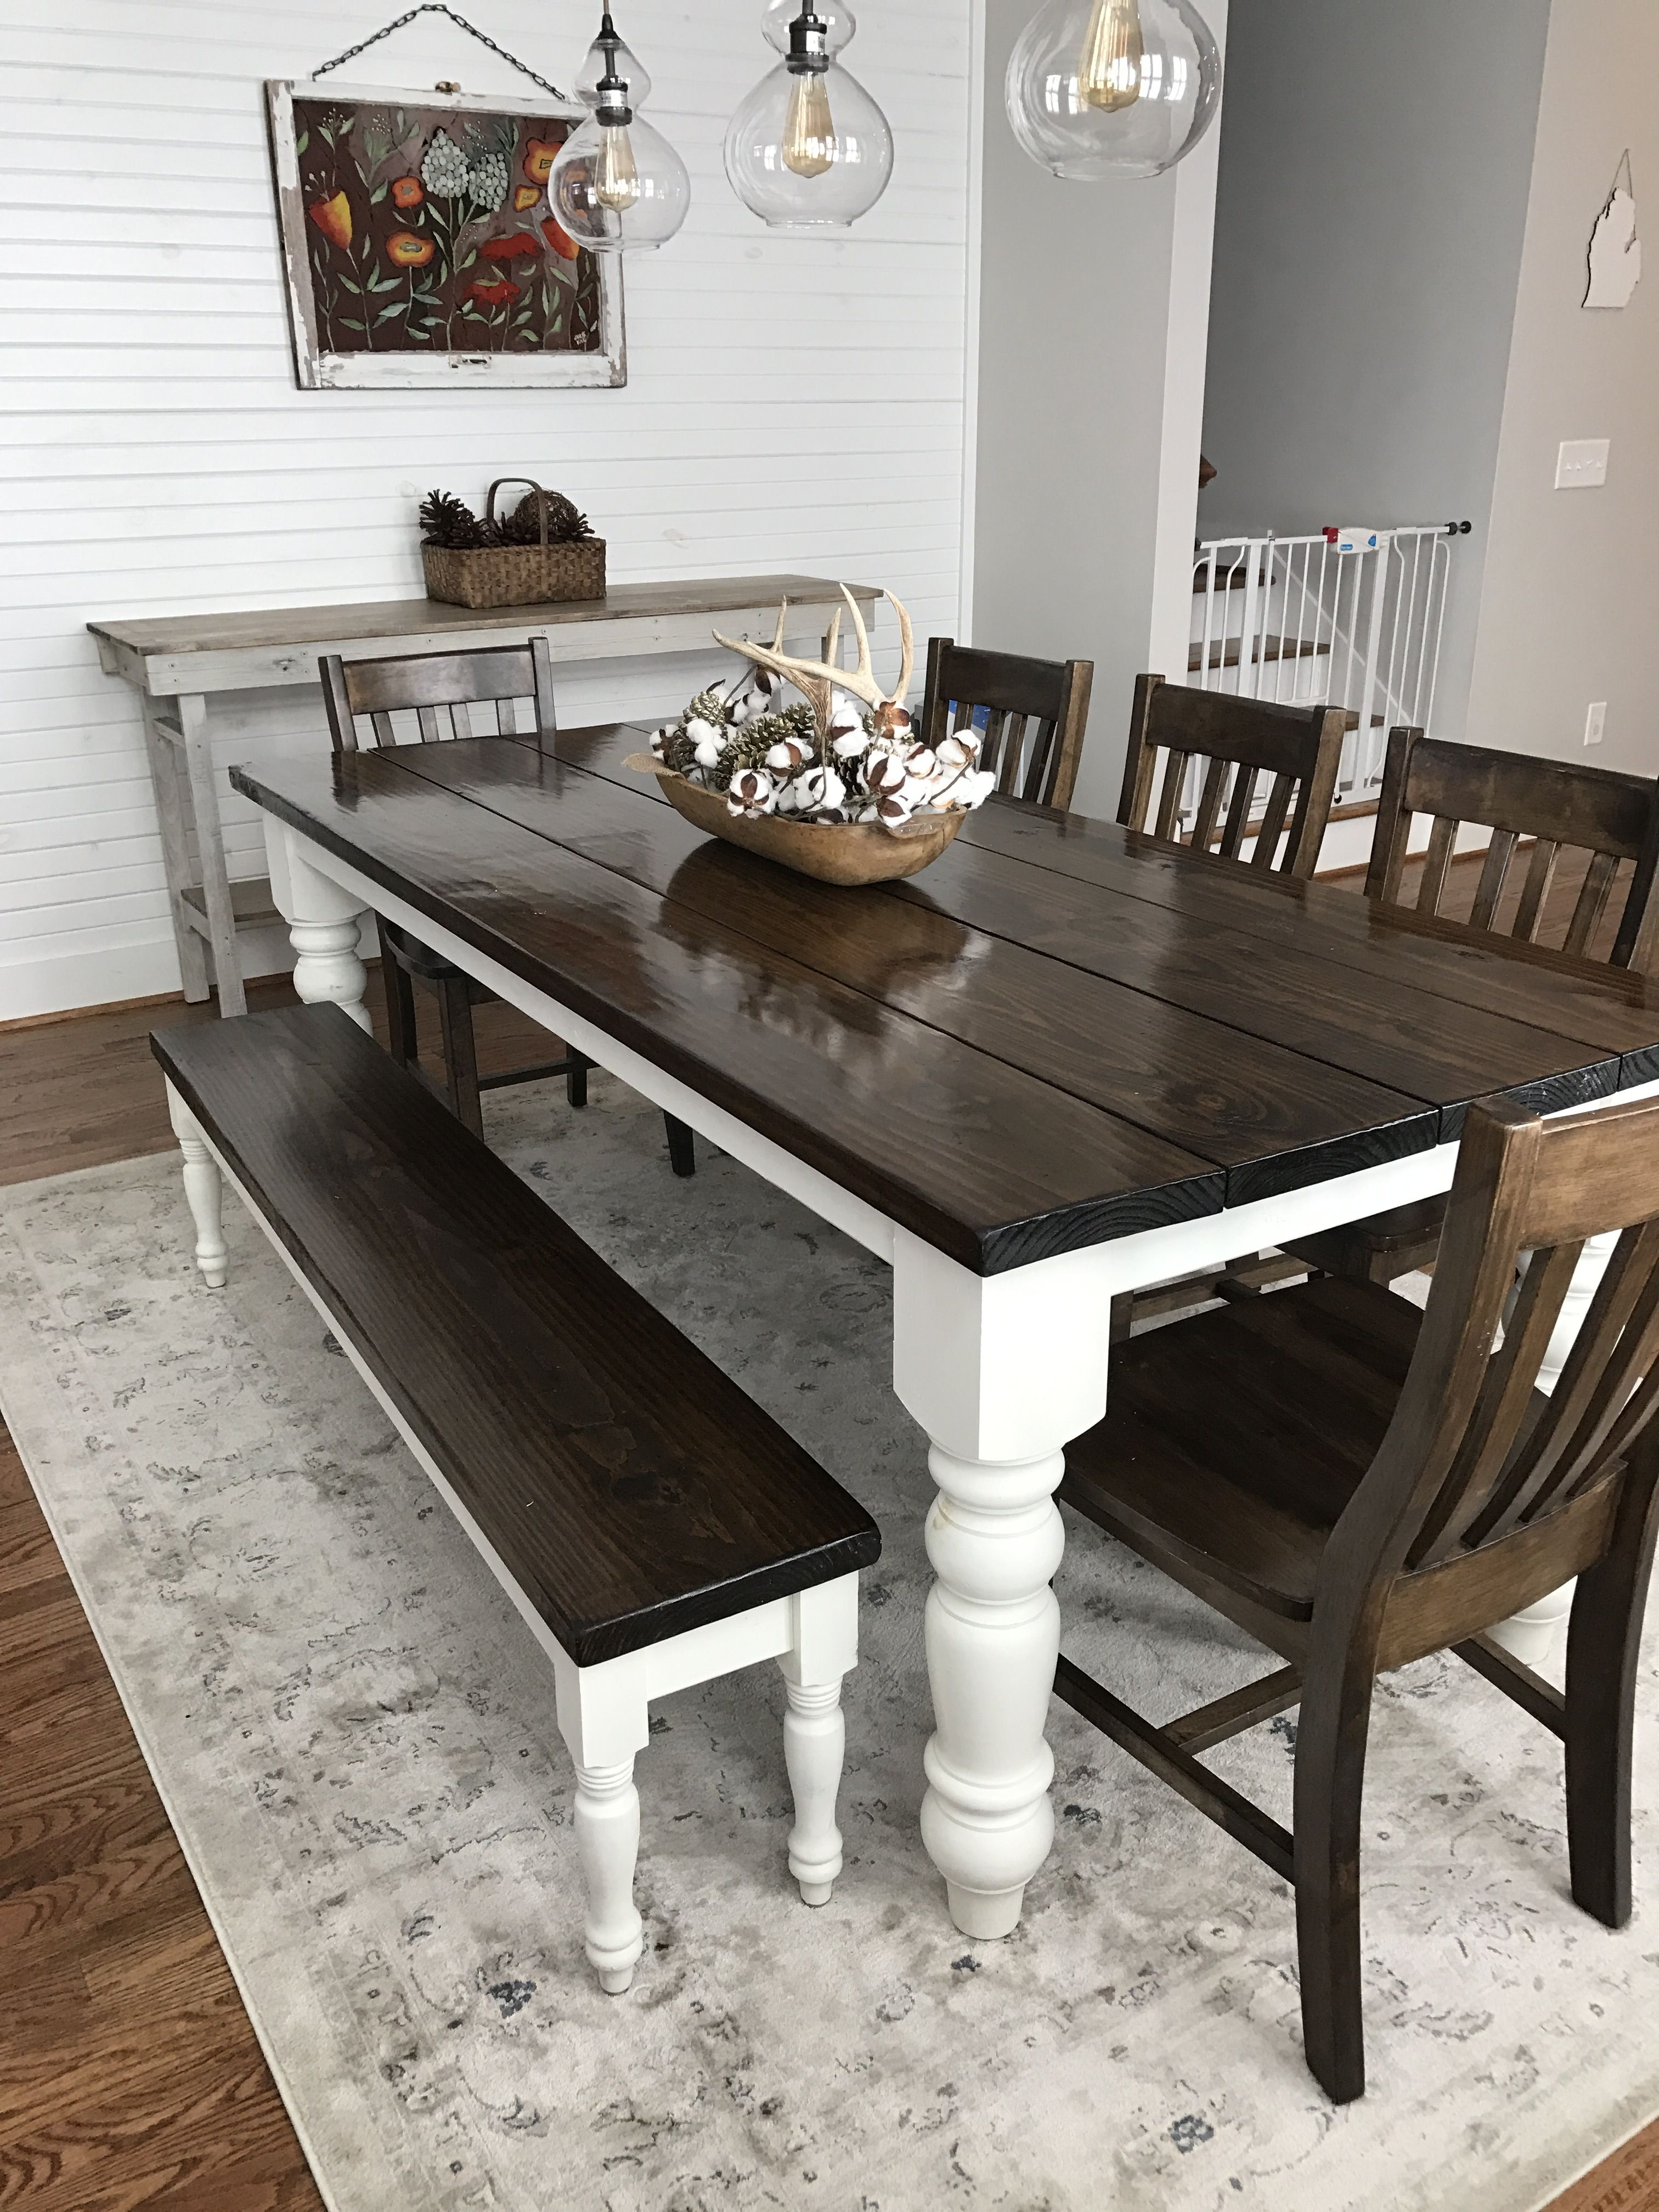 custom built solid wood modern farmhouse dining furniture 7 l x 37 w x 30 h baluster table with a traditional tabletop stained dark walnut with an